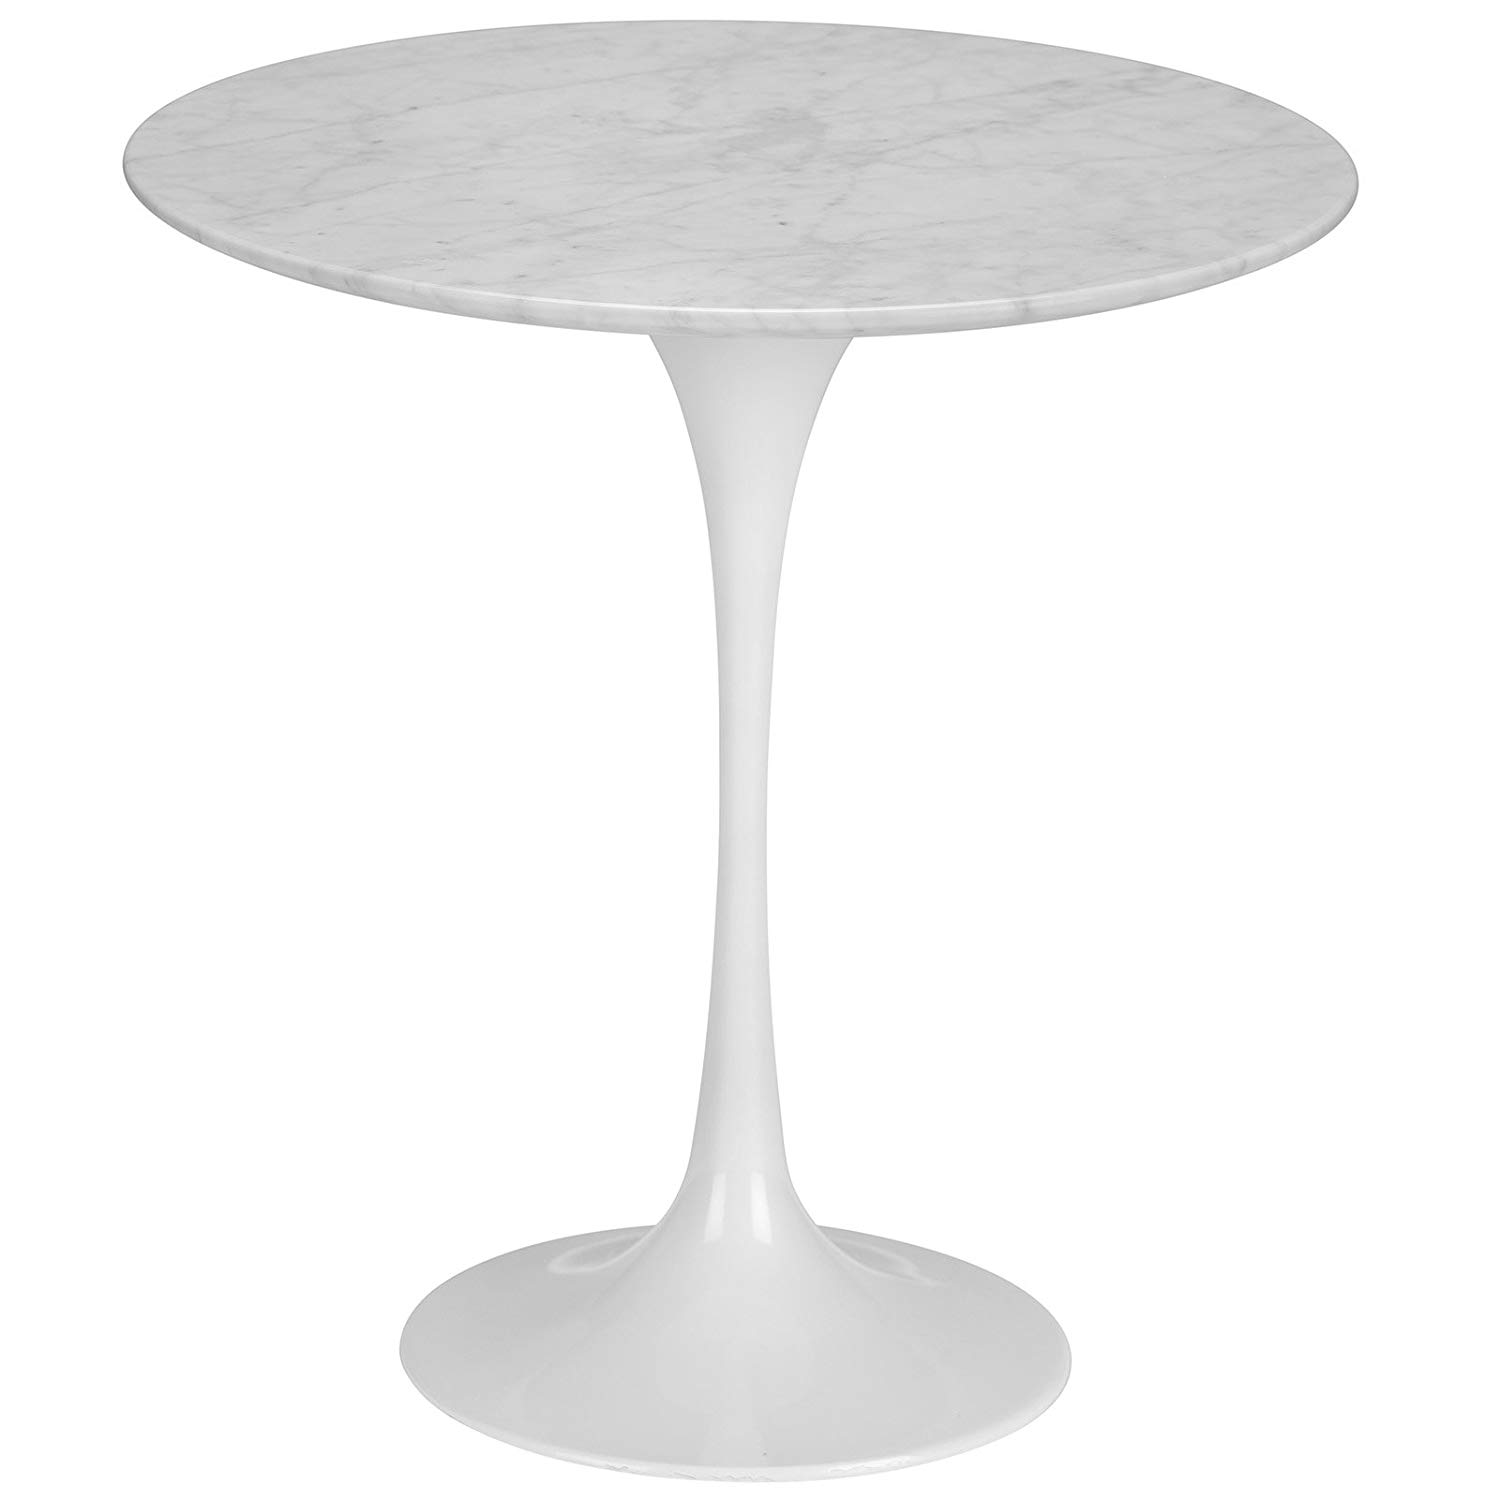 poly and bark daisy marble side table white base zfjqel accent kitchen dining pub height wide console tablecloth for small round outdoor furniture cherry tablet eagle screen porch